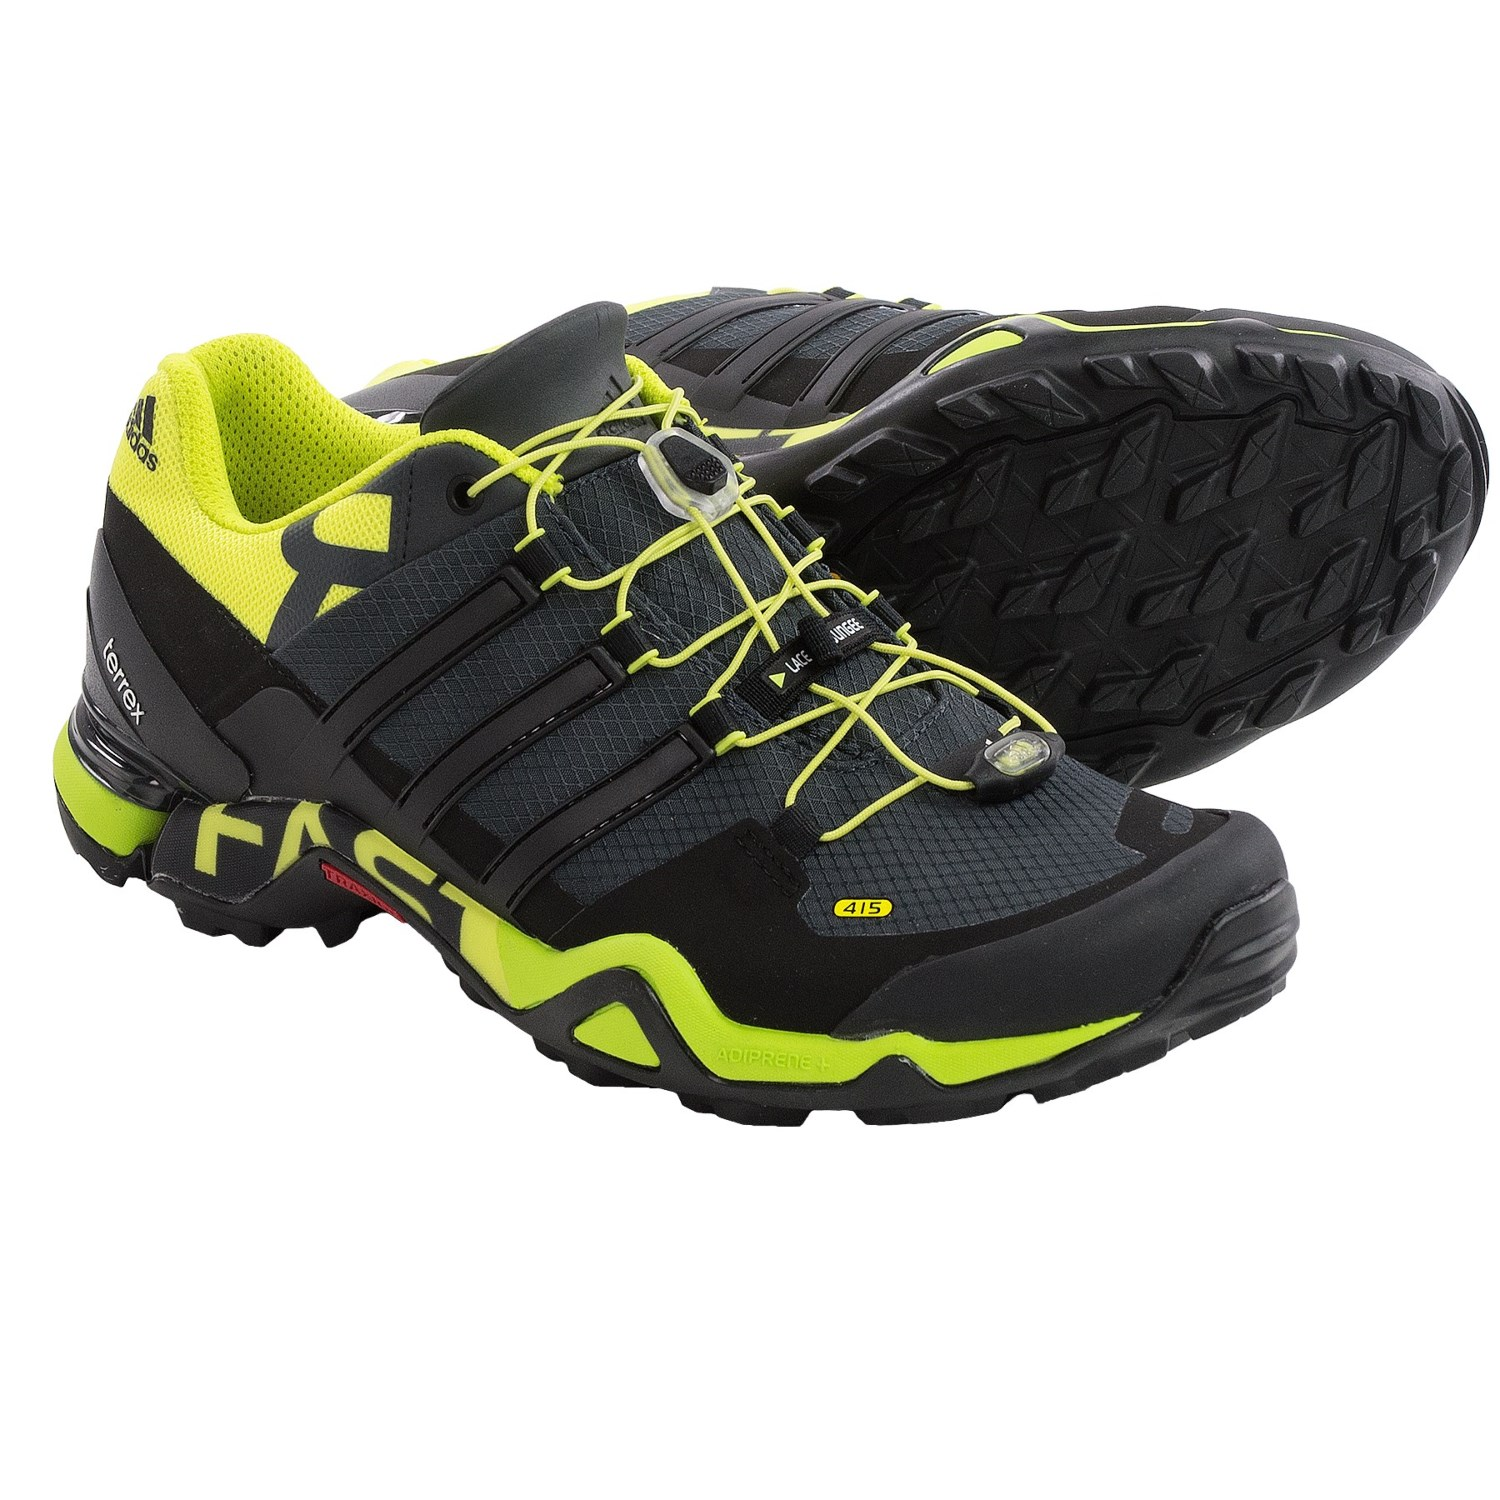 Adidas Terrex Fast R Trail Running Shoes (For Men) - Save 27%